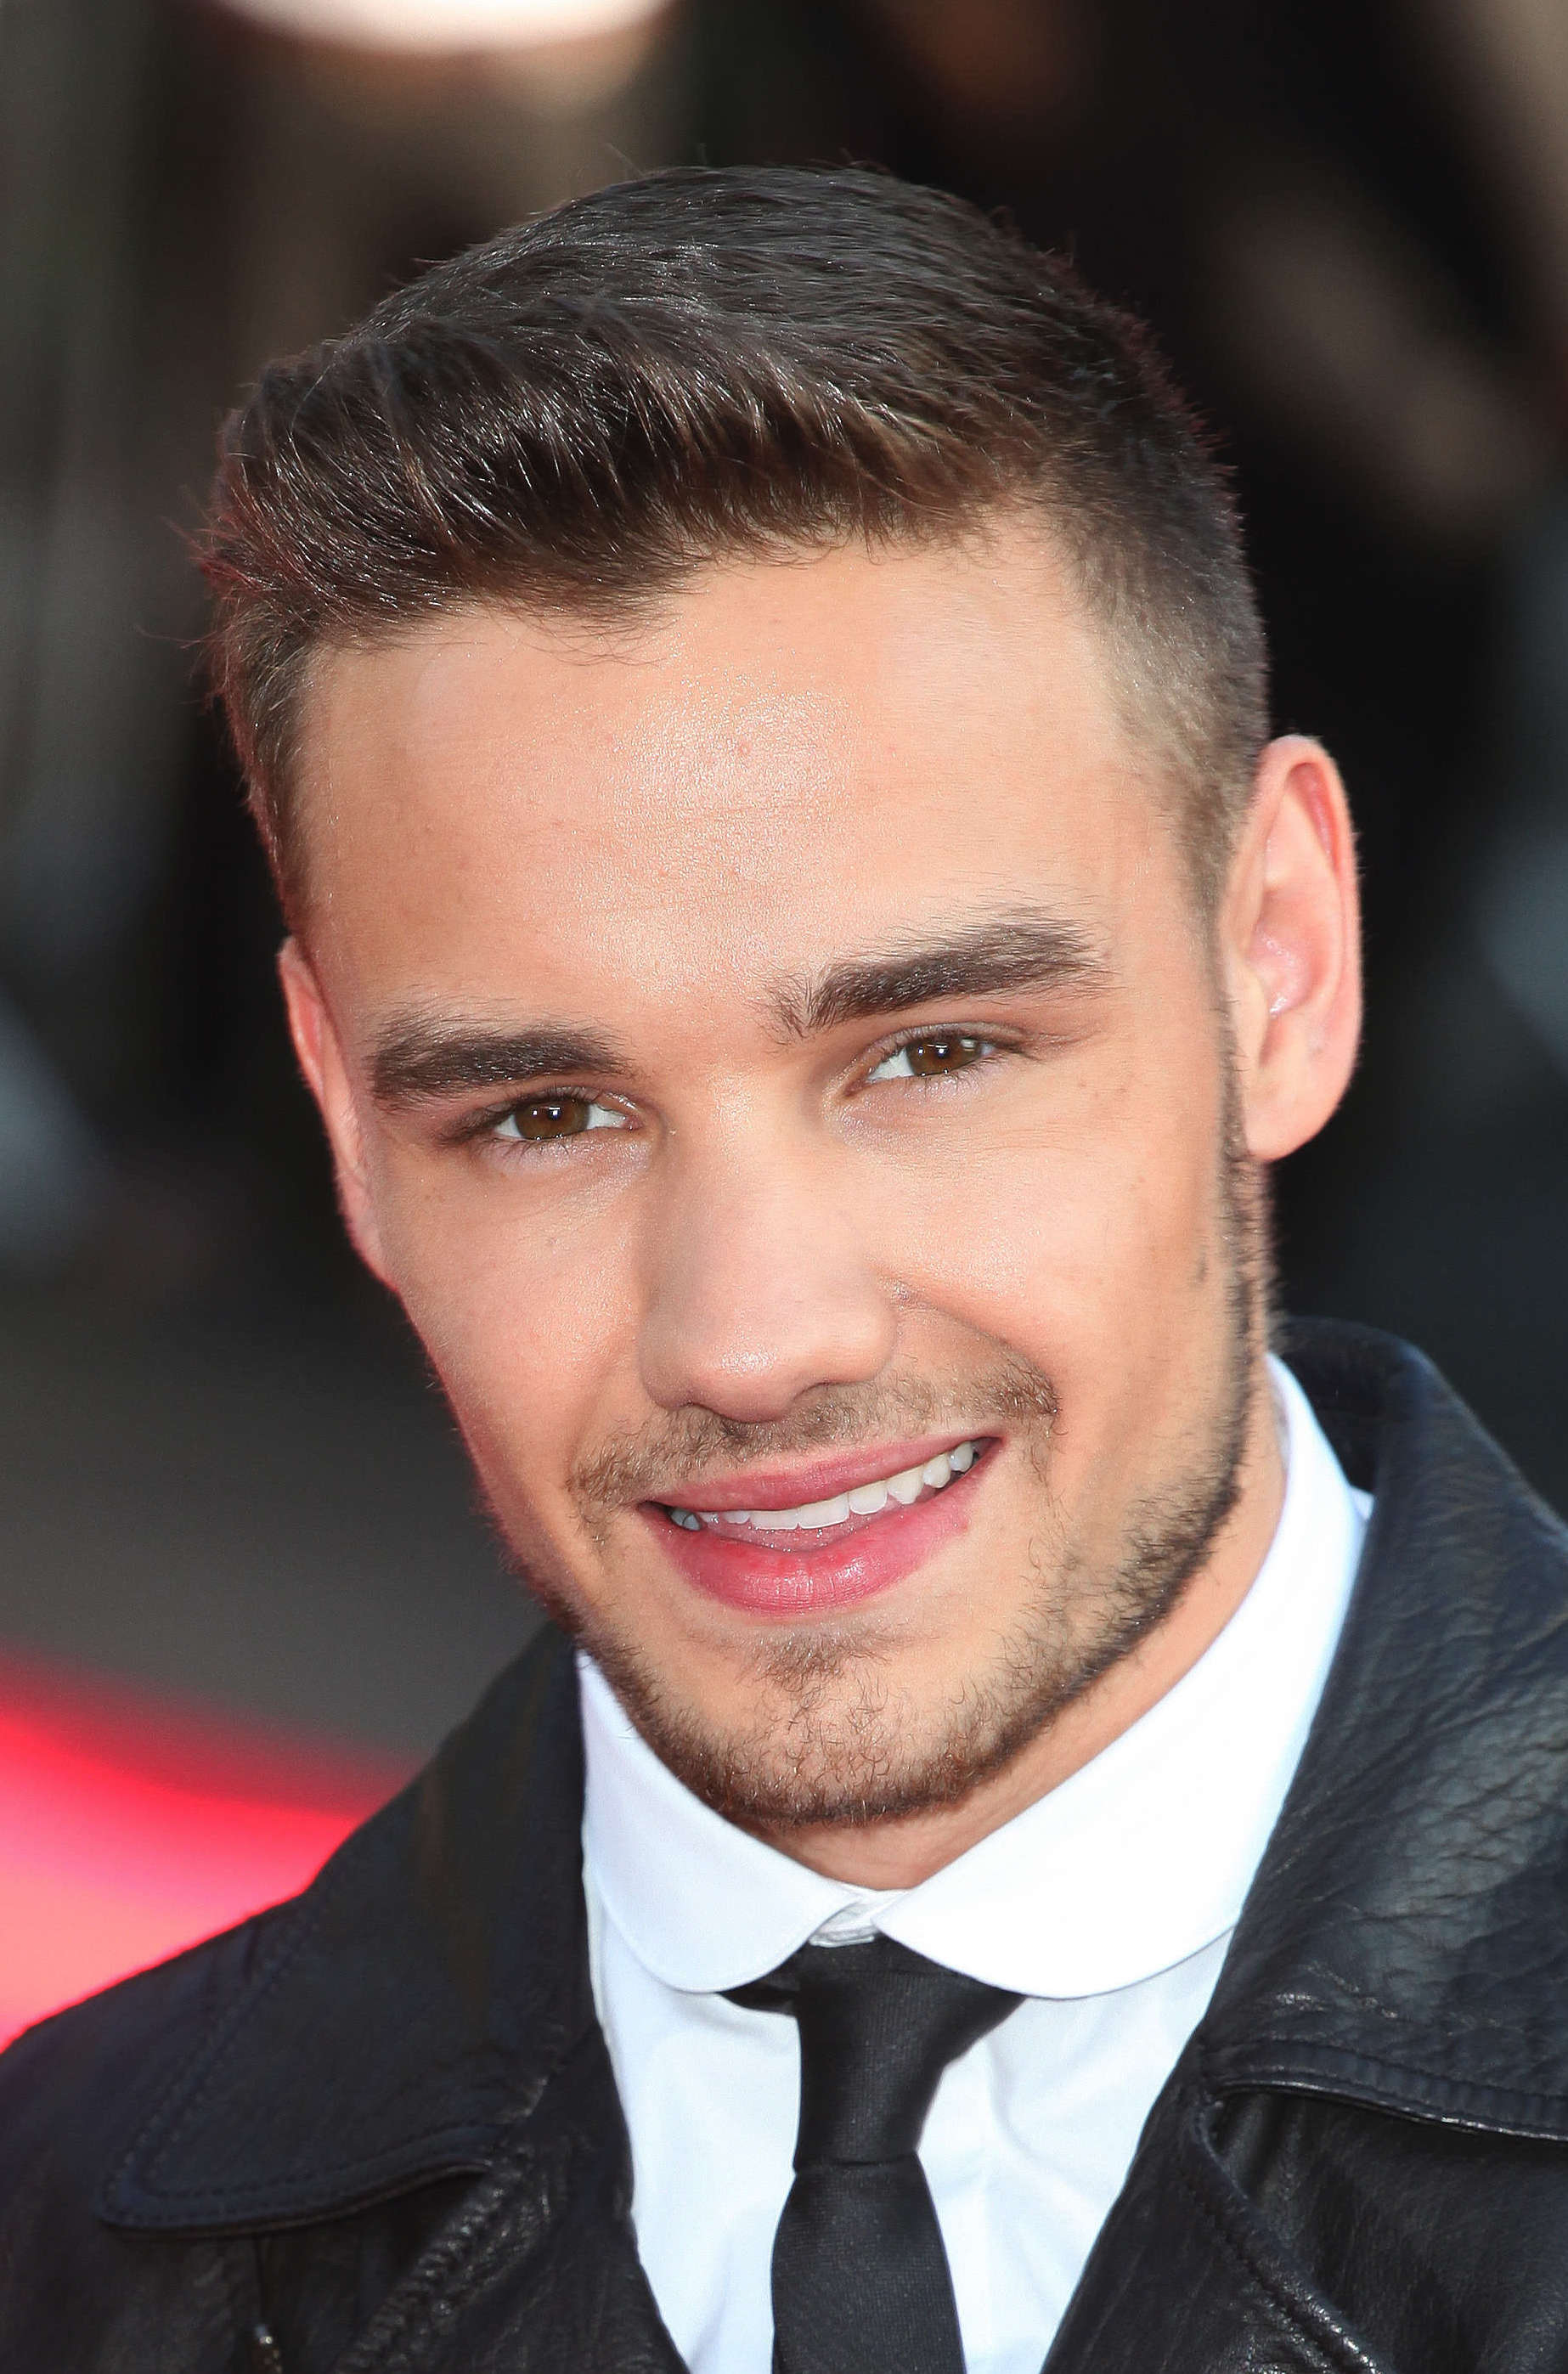 Liam Payne's Ivy League Hairstyle